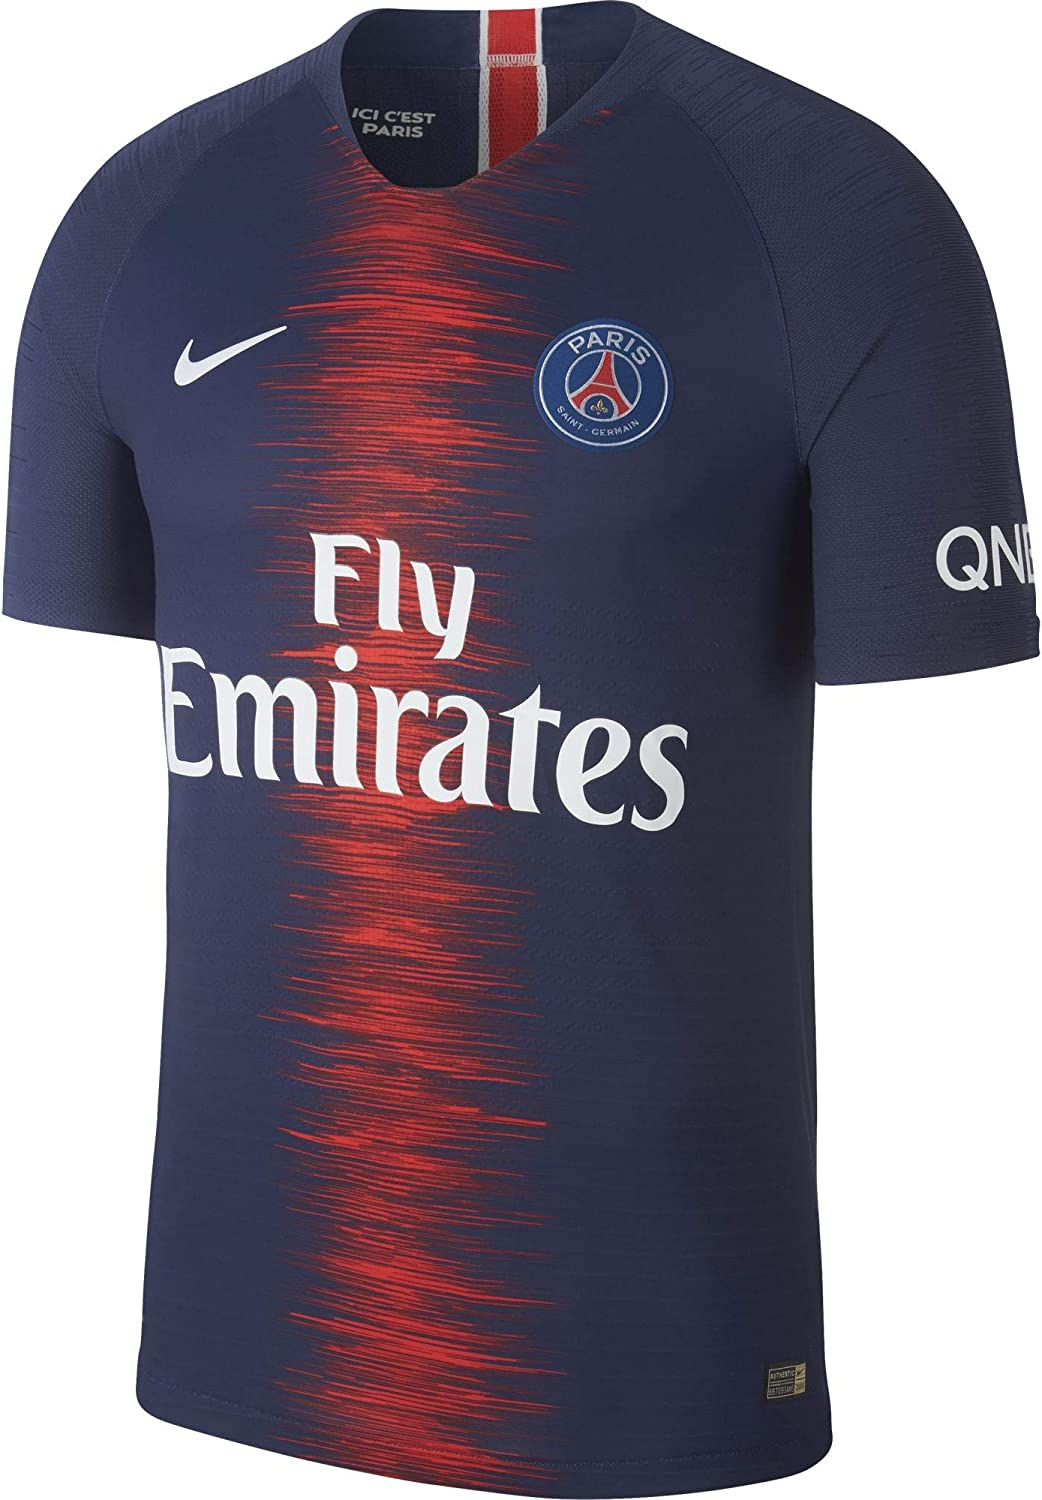 Amazon Com Nike 2018 2019 Psg Authentic Vapor Match Home Football Soccer T Shirt Jersey Sports Outdoors